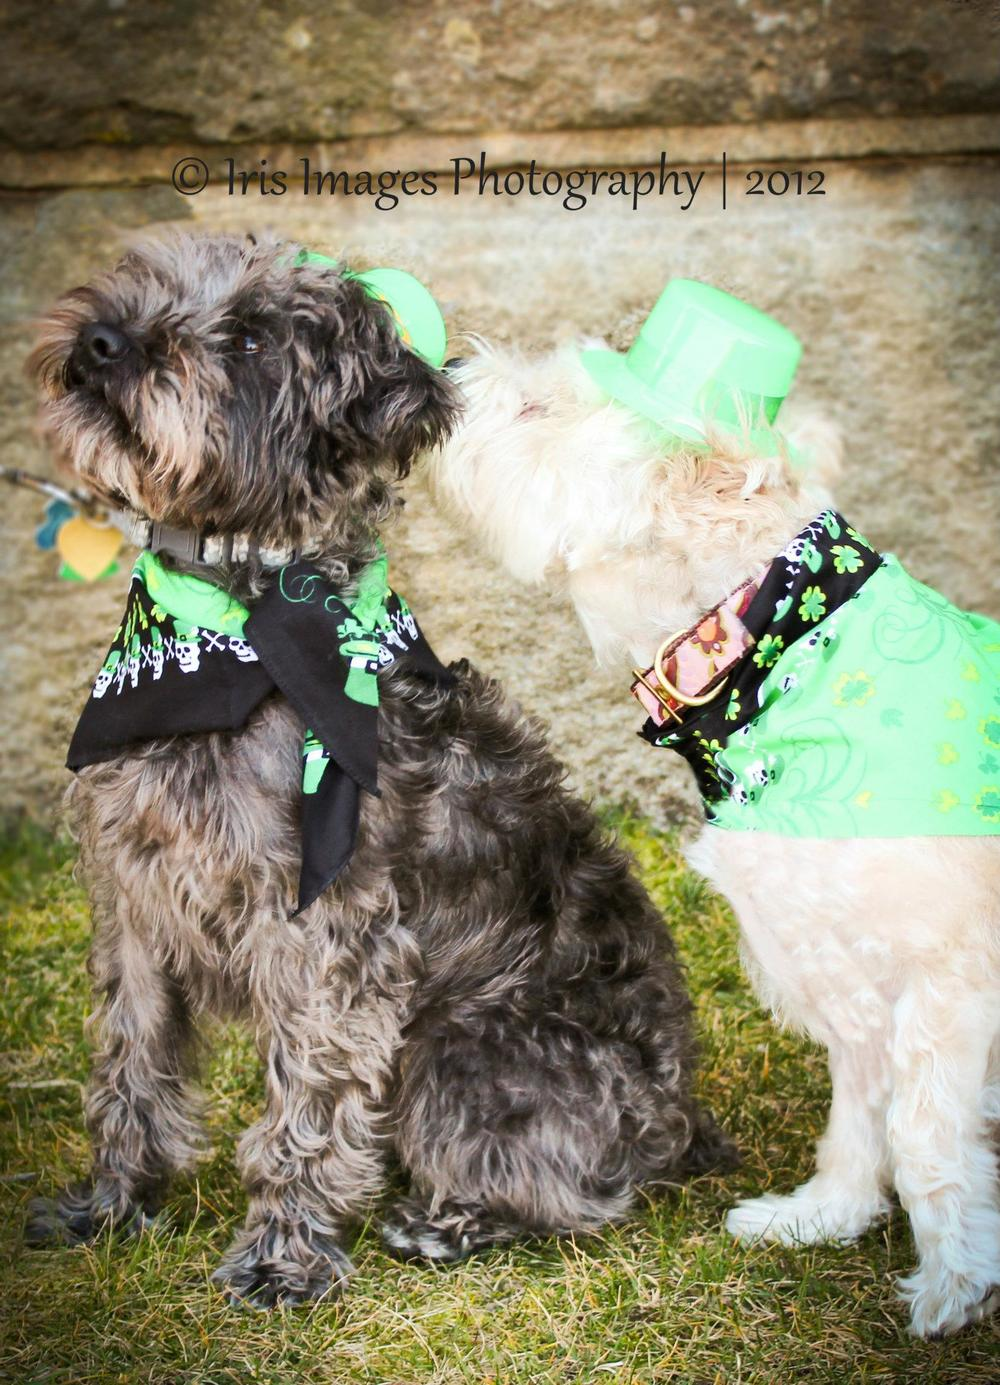 dogs in Saint Patrick's Day gear